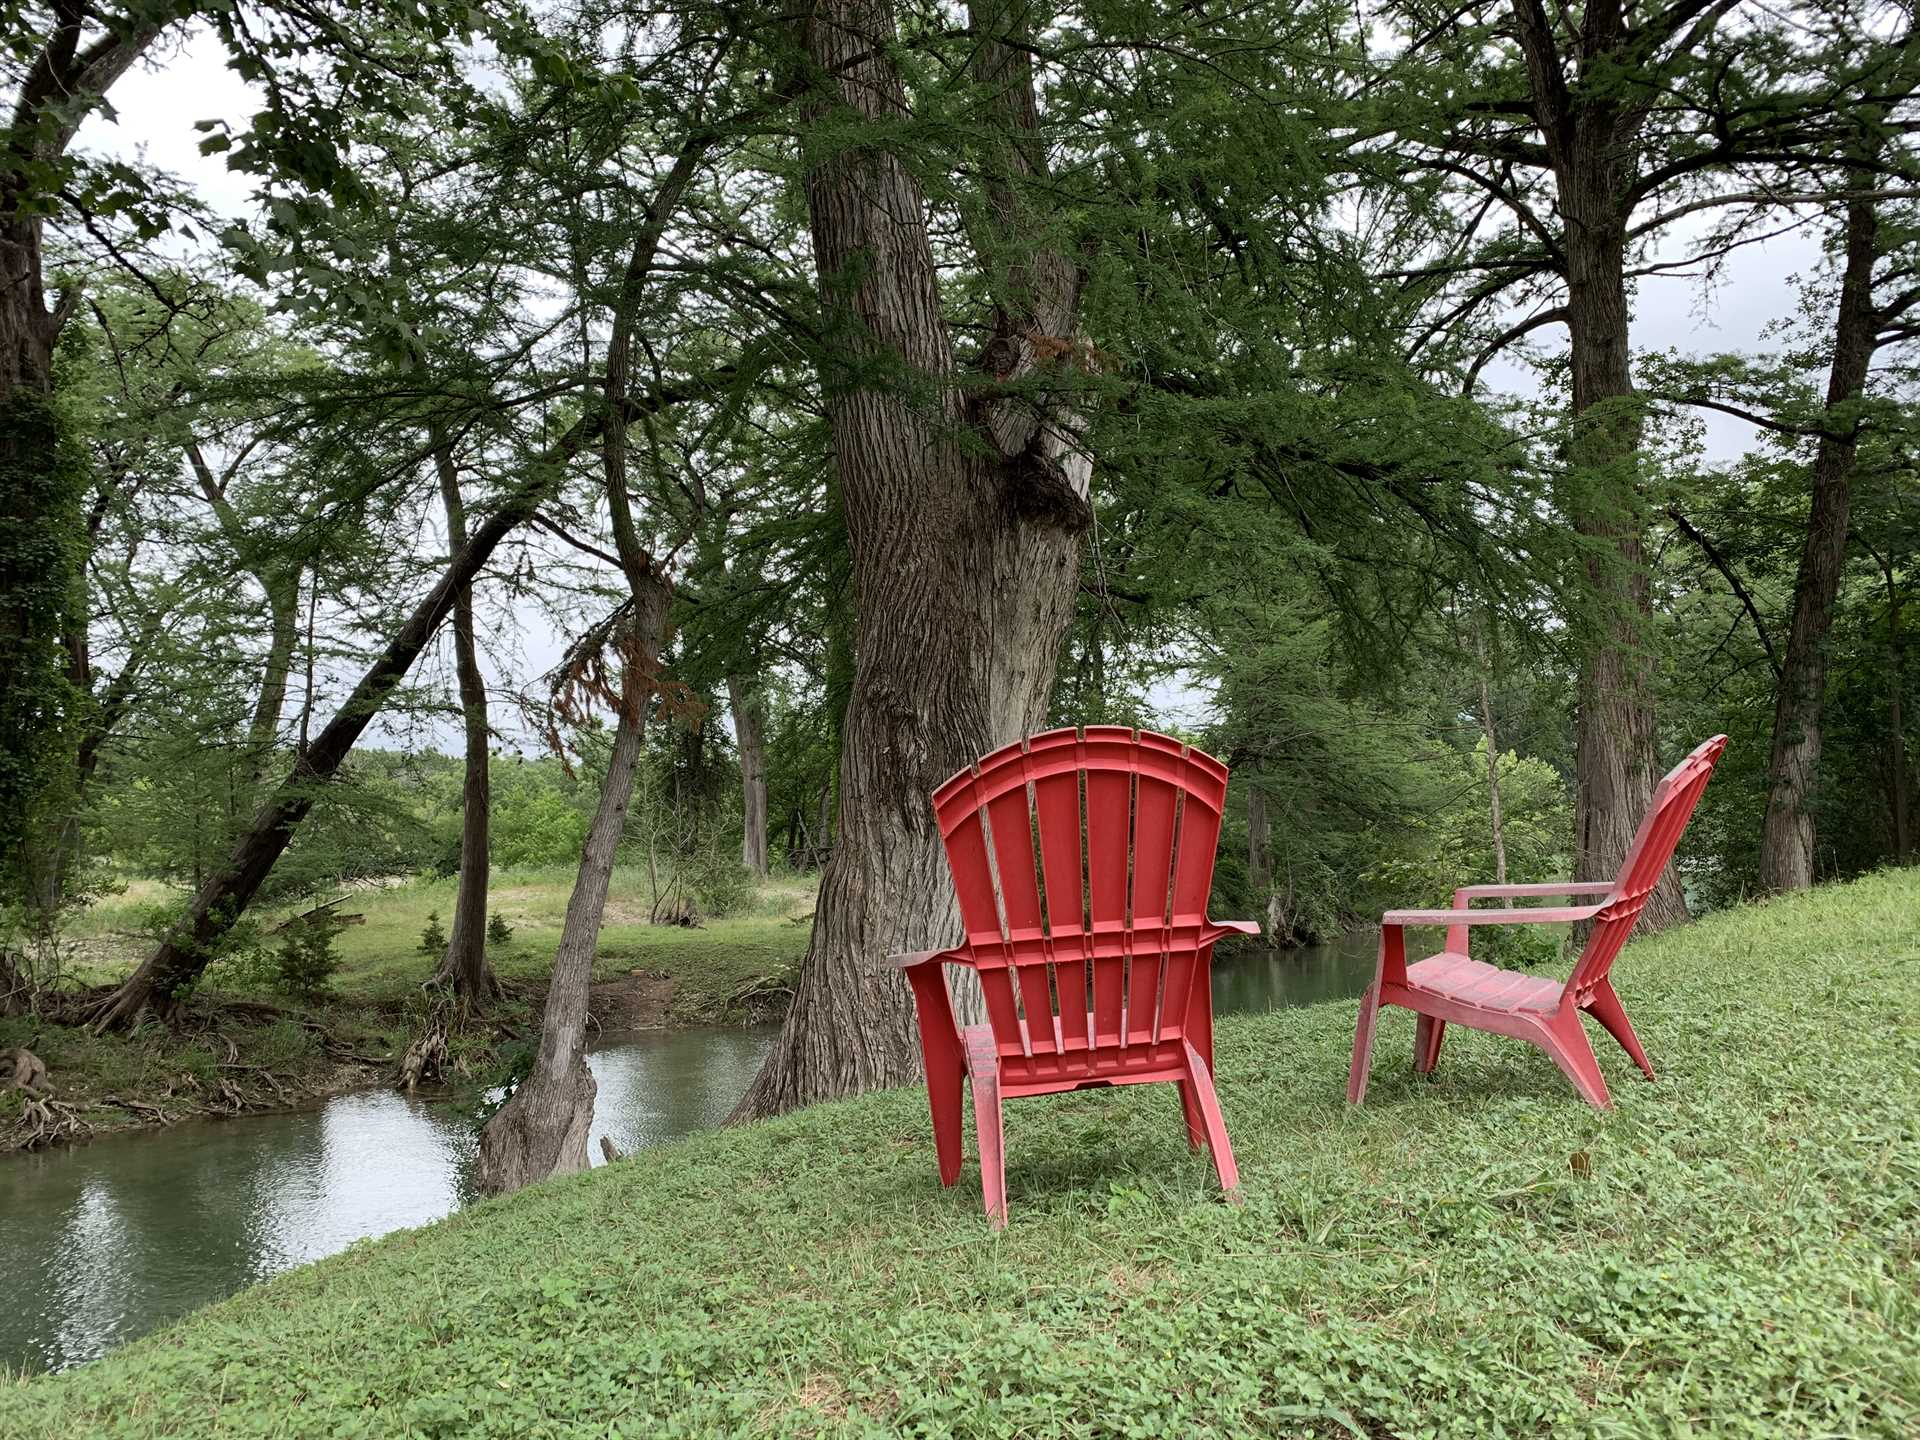 The tree-lined Medina River is just the ticket to sit back and feel your tensions melt away.